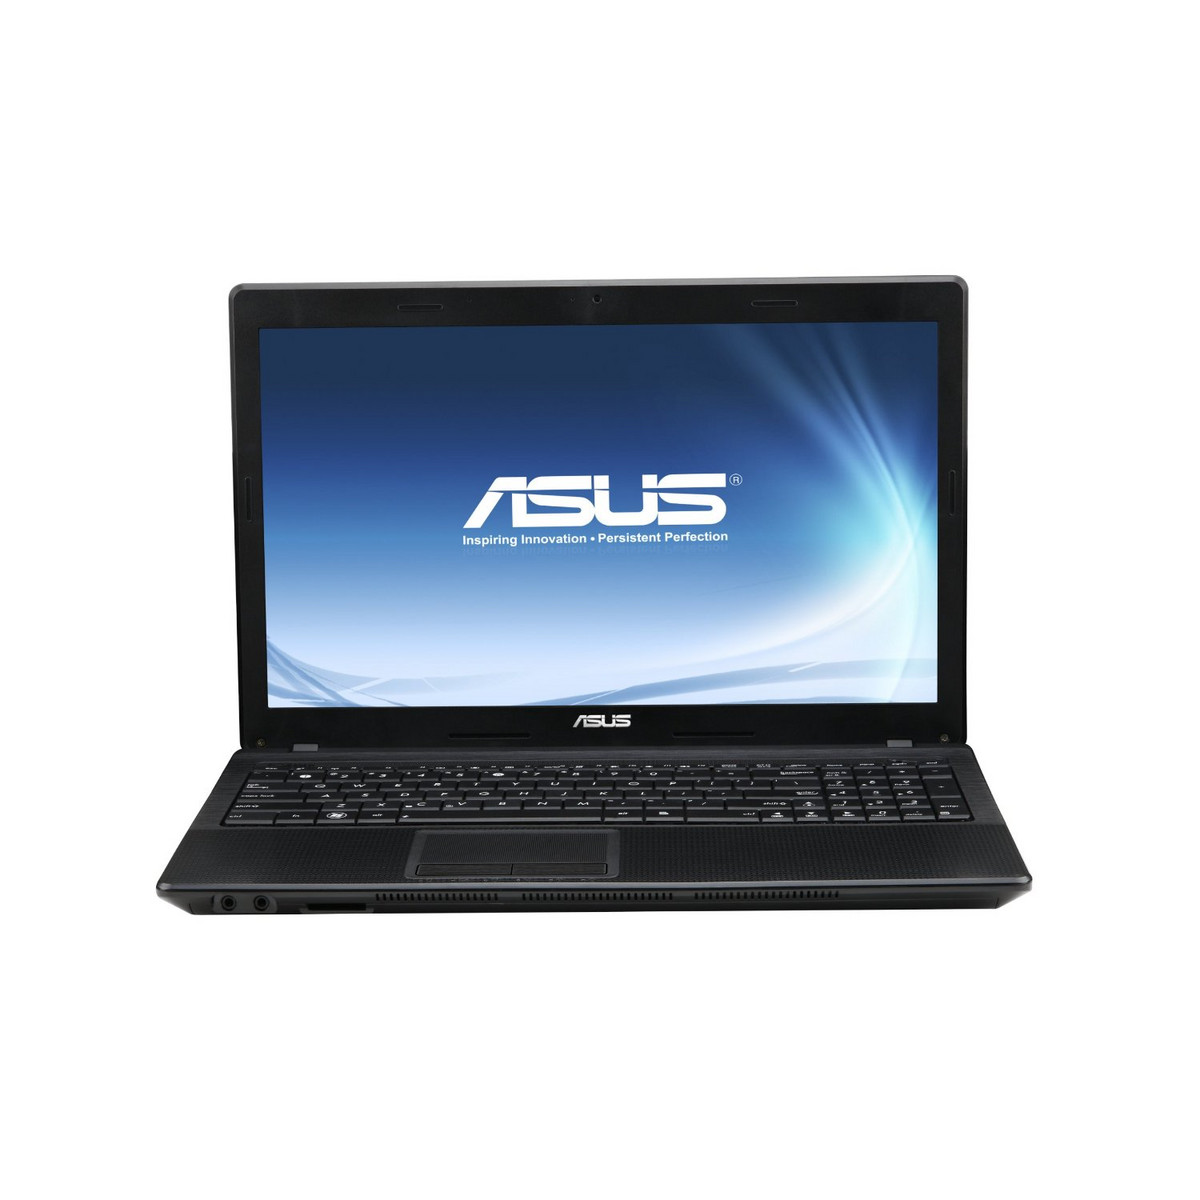 ASUS X54H NOTEBOOK INTEL DISPLAY DRIVER